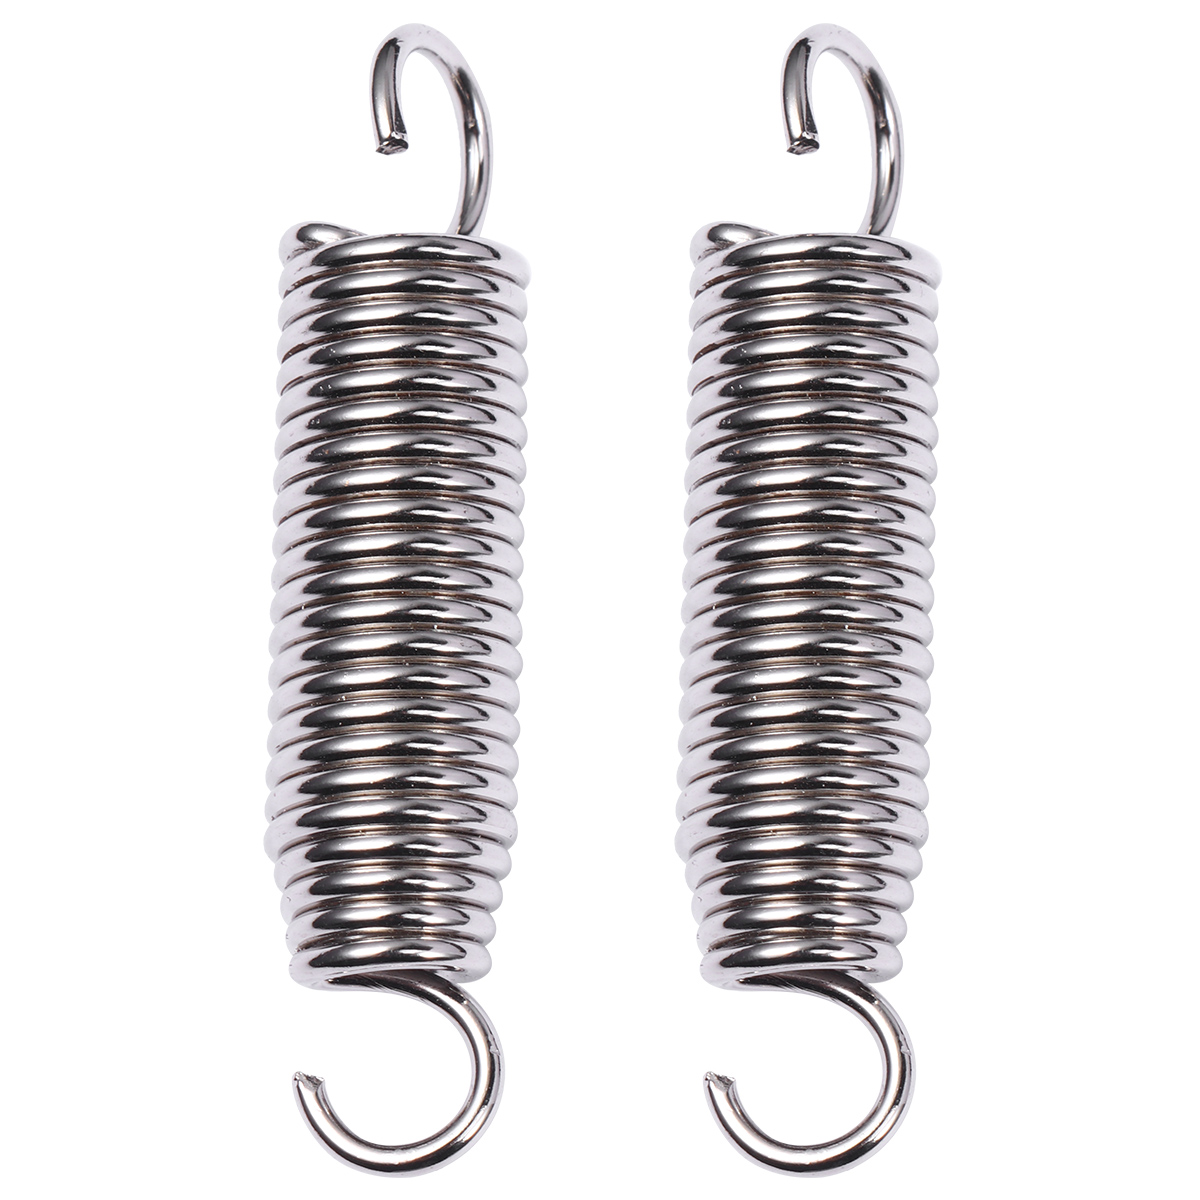 2pcs Stainless Steel Drum Foot Pedal Spring For Percussion Instrument Parts